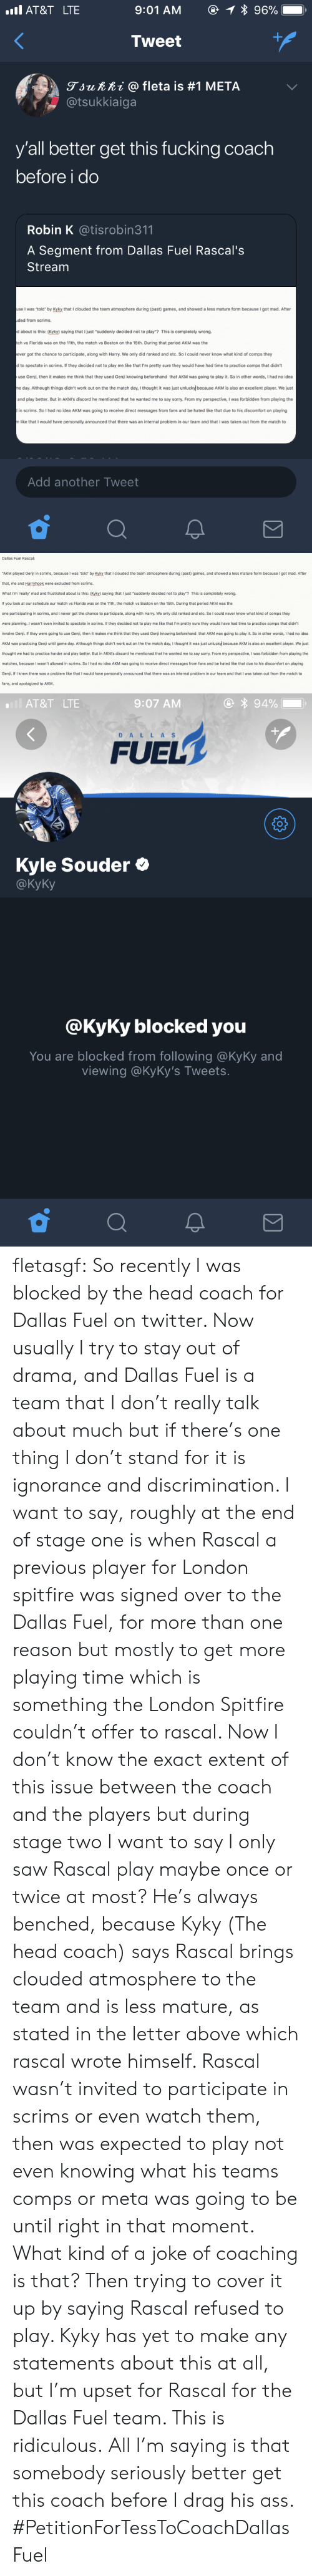 """Game Day: AT&T LTE  Tweet  gjunni @ fleta is #1 META  @tsukkiaiga  y'all better get this fucking coach  before i do  Robin K @tisrobin311  A Segment from Dallas Fuel Rascal's  Stream  se I was 'told by Kyky that I clouded the team atmosphere during (past) games, and showed a less mature form because I got mad. After  ded from scrims.  d about is this: (Kyky) saying that I just """"suddenly decided not to play""""? This is completely wrong.  ch vs Florida was on the 11th, the match vs Boston on the 15th. During that period AKM was the  ever got the chance to participate, along with Harry. We only did ranked and etc. So I could never know what kind of comps they  to spectate in scrims. If they decided not to play me like that I'm pretty sure they would have had time to practice comps that didn't  use Genji, then it makes me think that they used Genji knowing beforehand that AKM was going to play it. So in other words, I had no idea  e day. Although things didn't work out on the the match day, I thought it was just unlucky)because AKM is also an excellent player. We just  and play better. But in AKM's discord he mentioned that he wanted me to say sorry. From my perspective, I was forbidden from playing the  in scrims. So I had no idea AKM was going to receive direct messages from fans and be hated like that due to his discomfort on playing  like that I would have personally announced that there was an internal problem in our team and that I was taken out from the match to  Add another Tweet   Dallas Fuel Rascal  """"AKM played Genj in scrims, because I was 'told' by Kyky that I clouded the team atmosphere during (past) games, and showed a less mature form because I got mad. After  that, me and Harryhook were excluded from scrims.  What I'm 'really mad and frustrated about is this: (Kyky) saying that I just """"suddenly decided not to play""""? This is completely wrong  If you look at our schedule our match vs Florida was on the 11th, the match vs Boston on the 15th. During that perio"""